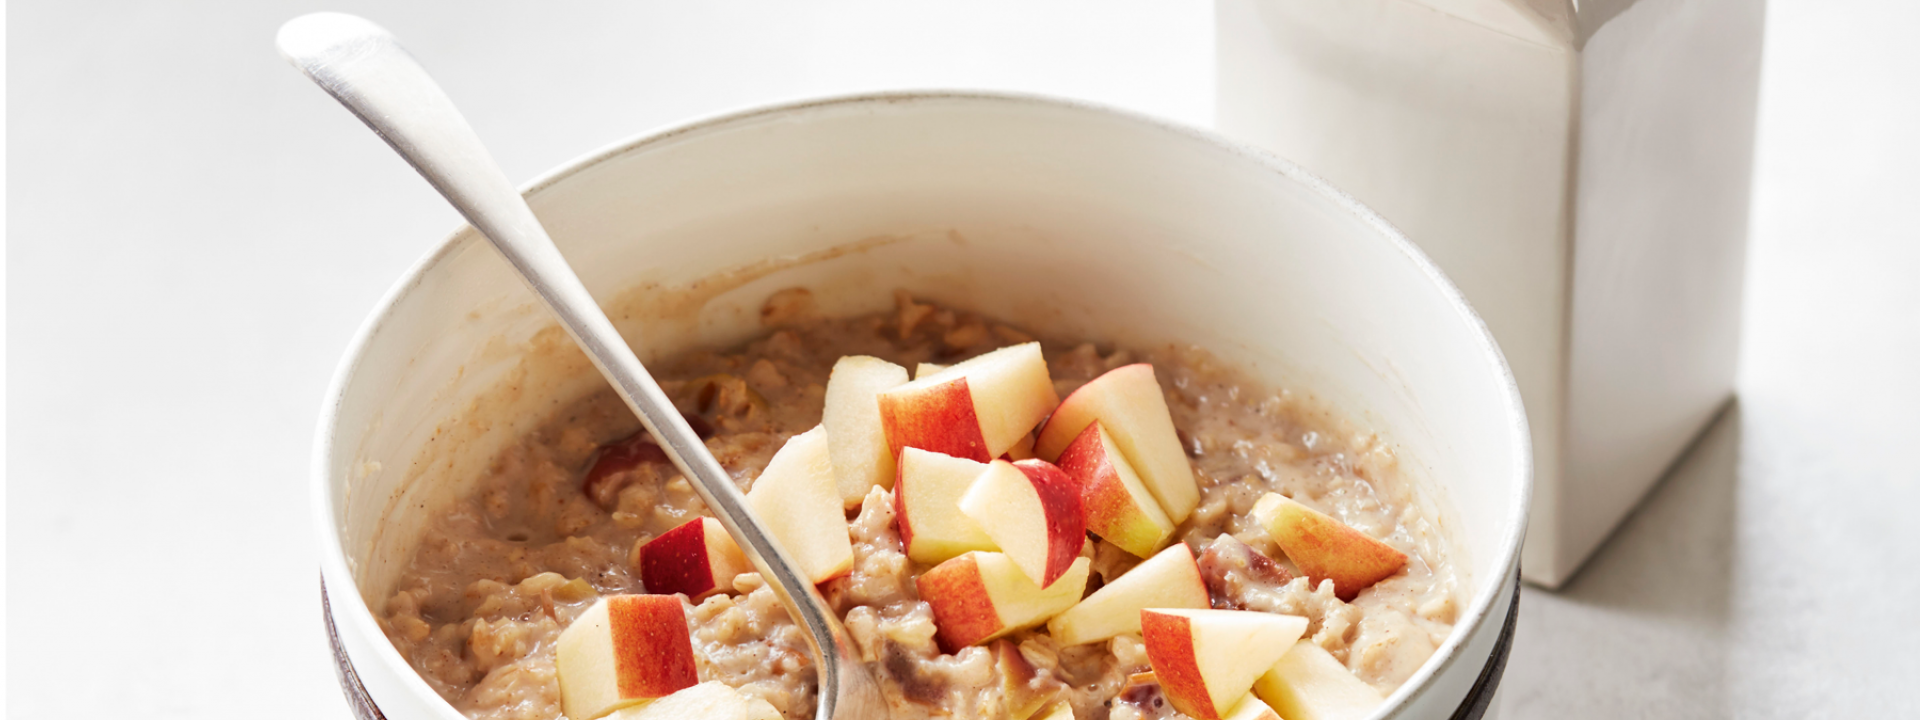 Apple pie spiced porridge